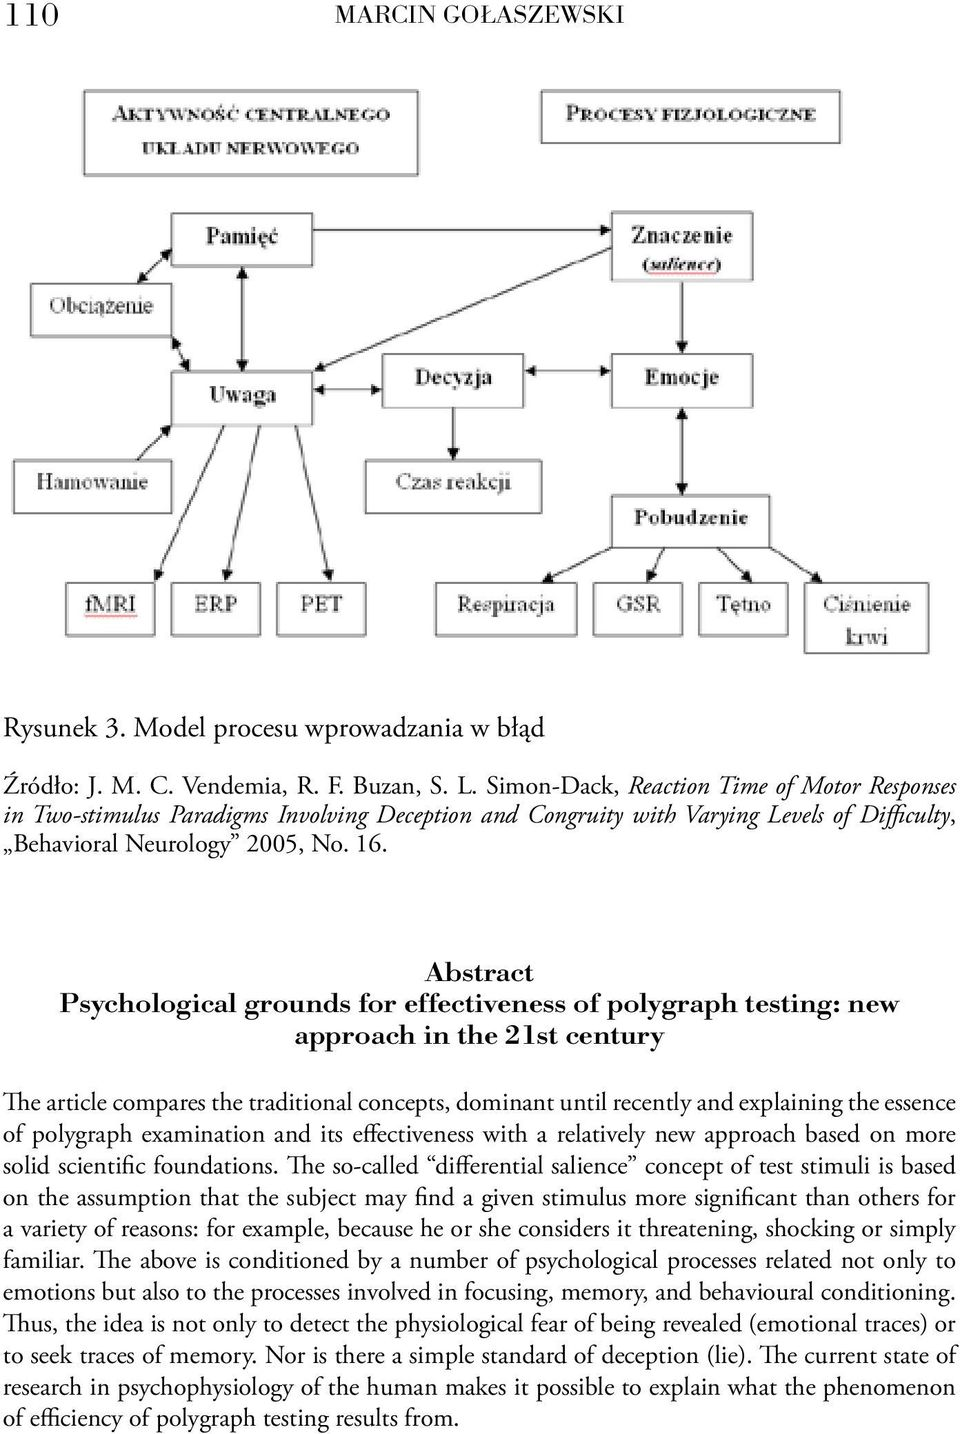 Abstract Psychological grounds for effectiveness of polygraph testing: new approach in the 21st century The article compares the traditional concepts, dominant until recently and explaining the